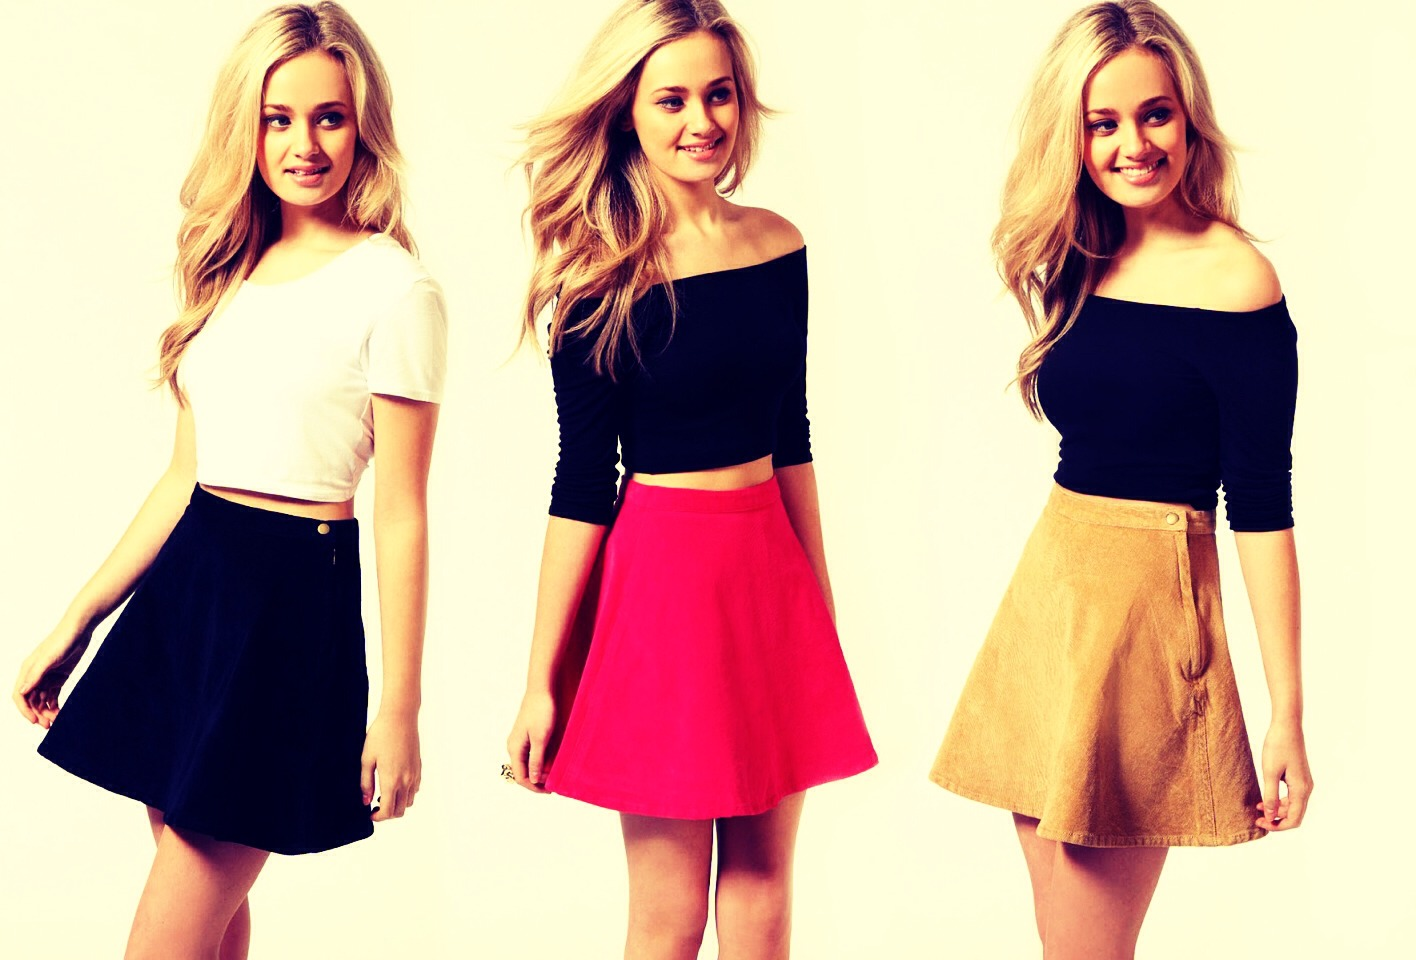 aeeec50bf9 Cheap Affordable Fashion In The Uk👑👗💄 by Phoebe Atherton - Musely